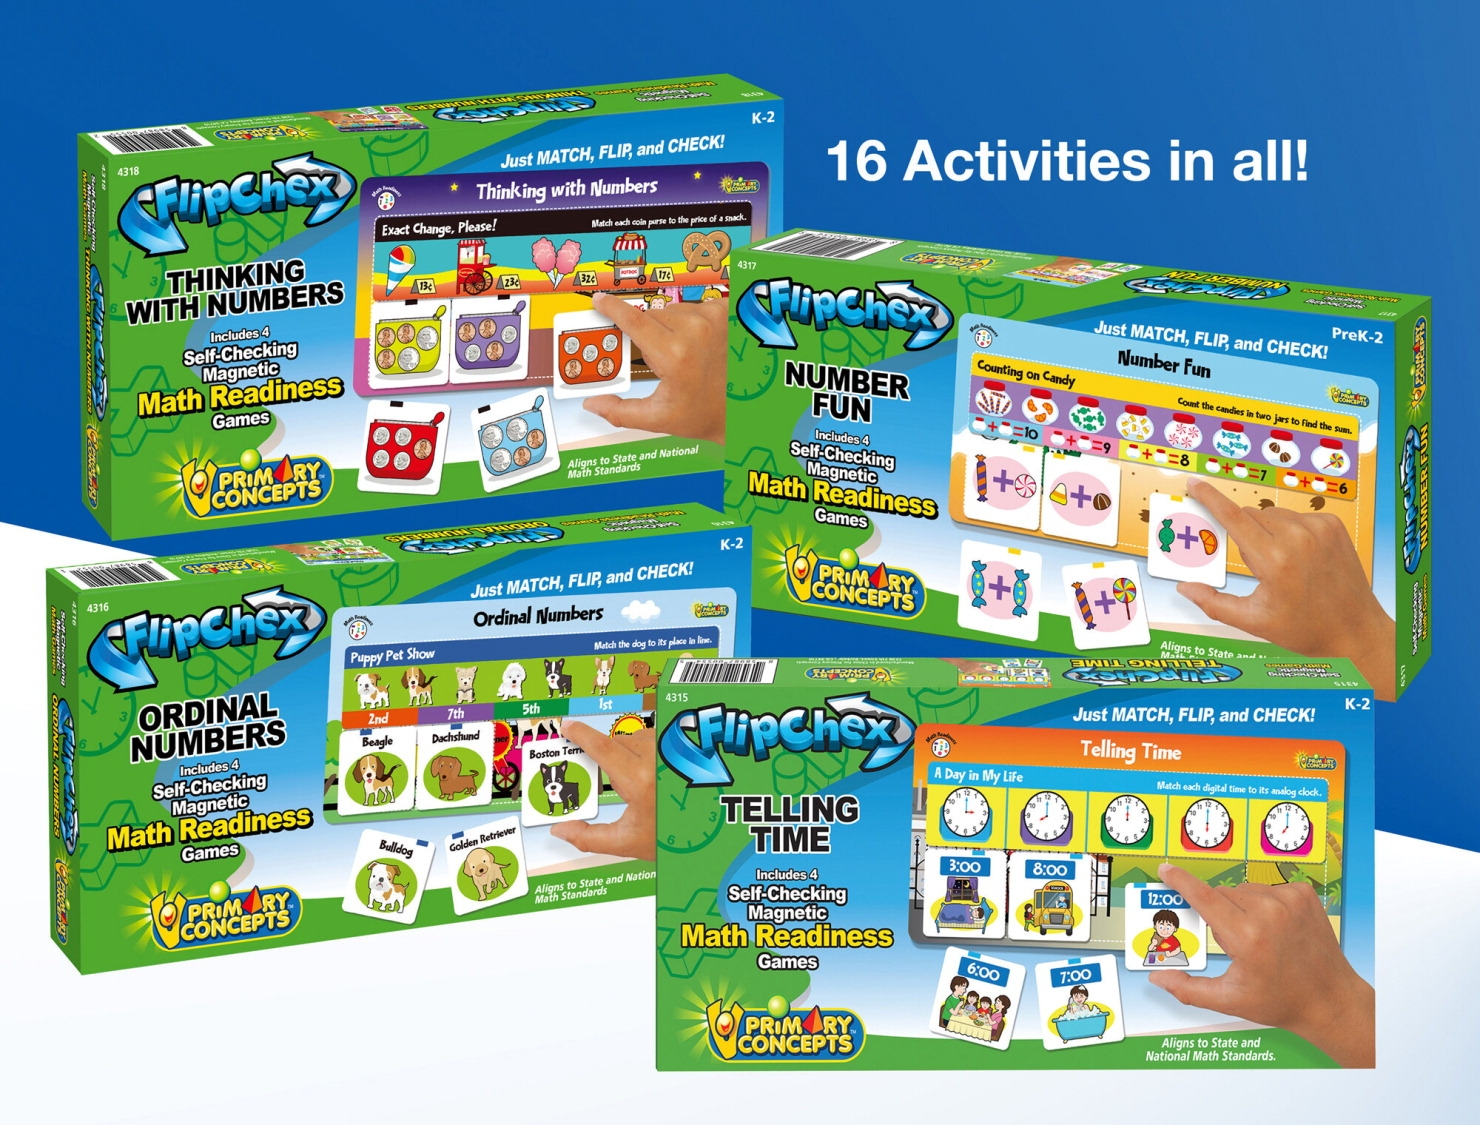 Toys Manipulatives - 1567640 - Primary Concepts Flipchex Math; Set Of 4 1567640